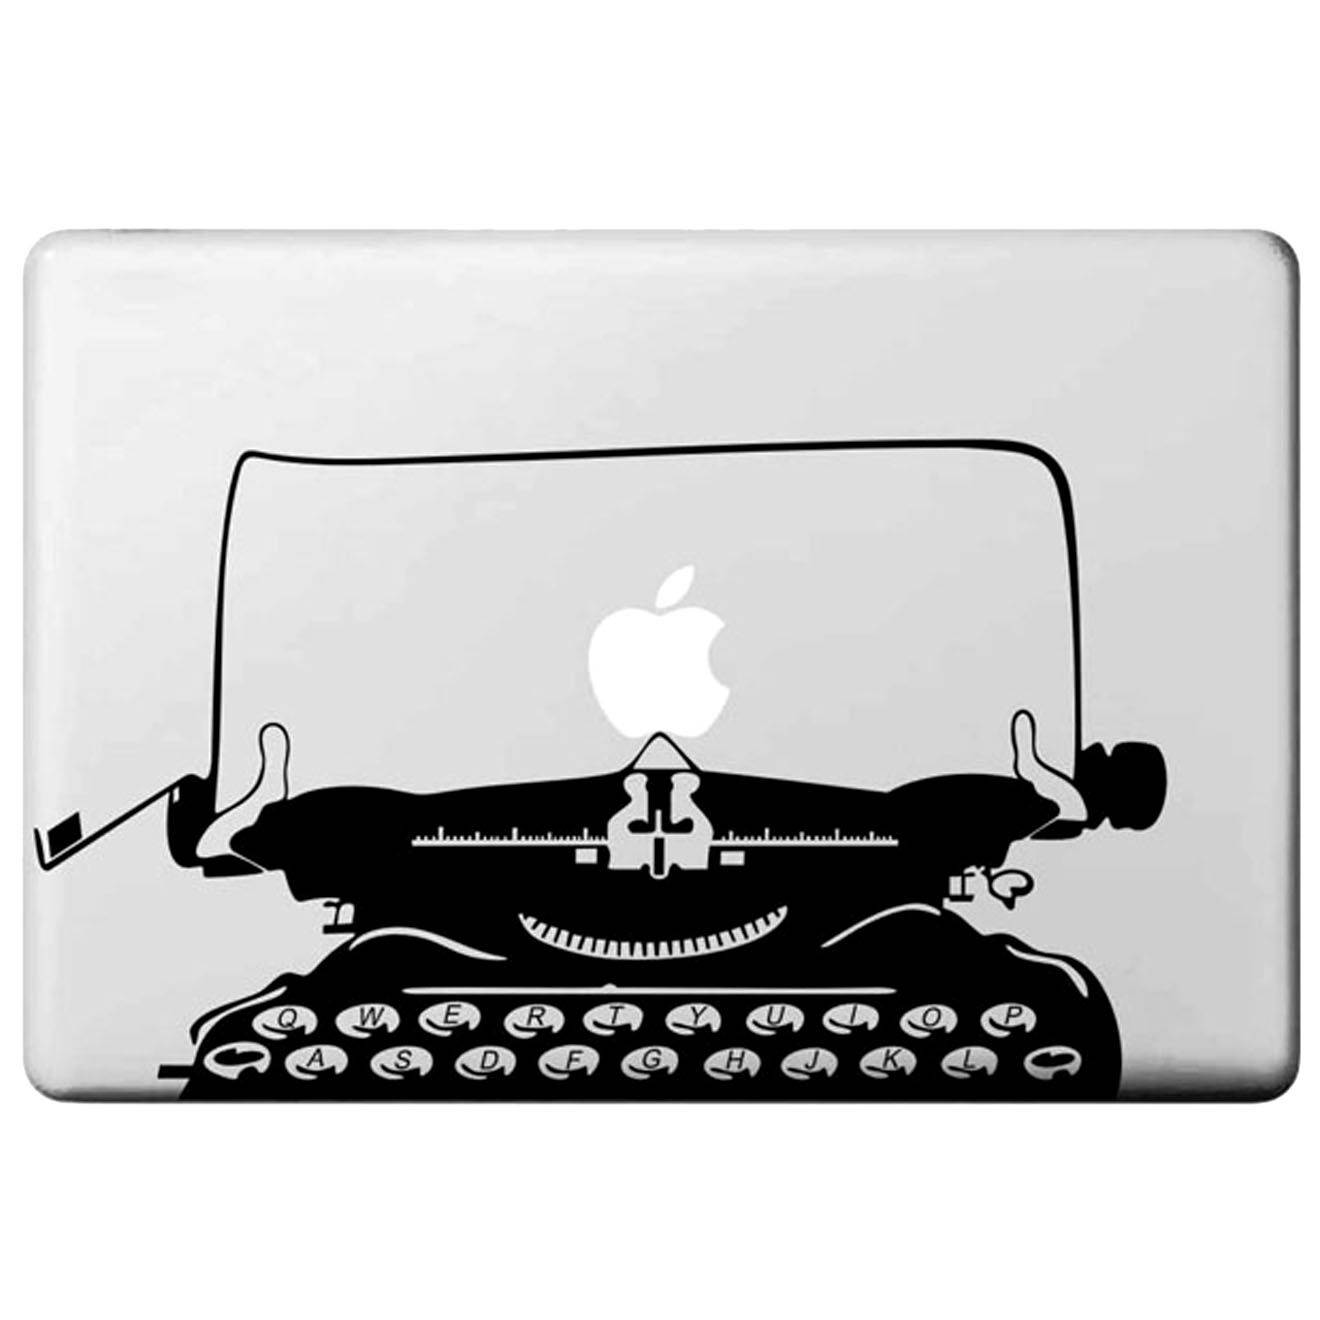 Doumie Autocollant MacBook Pro/Air machine à écrire - transparent/noir